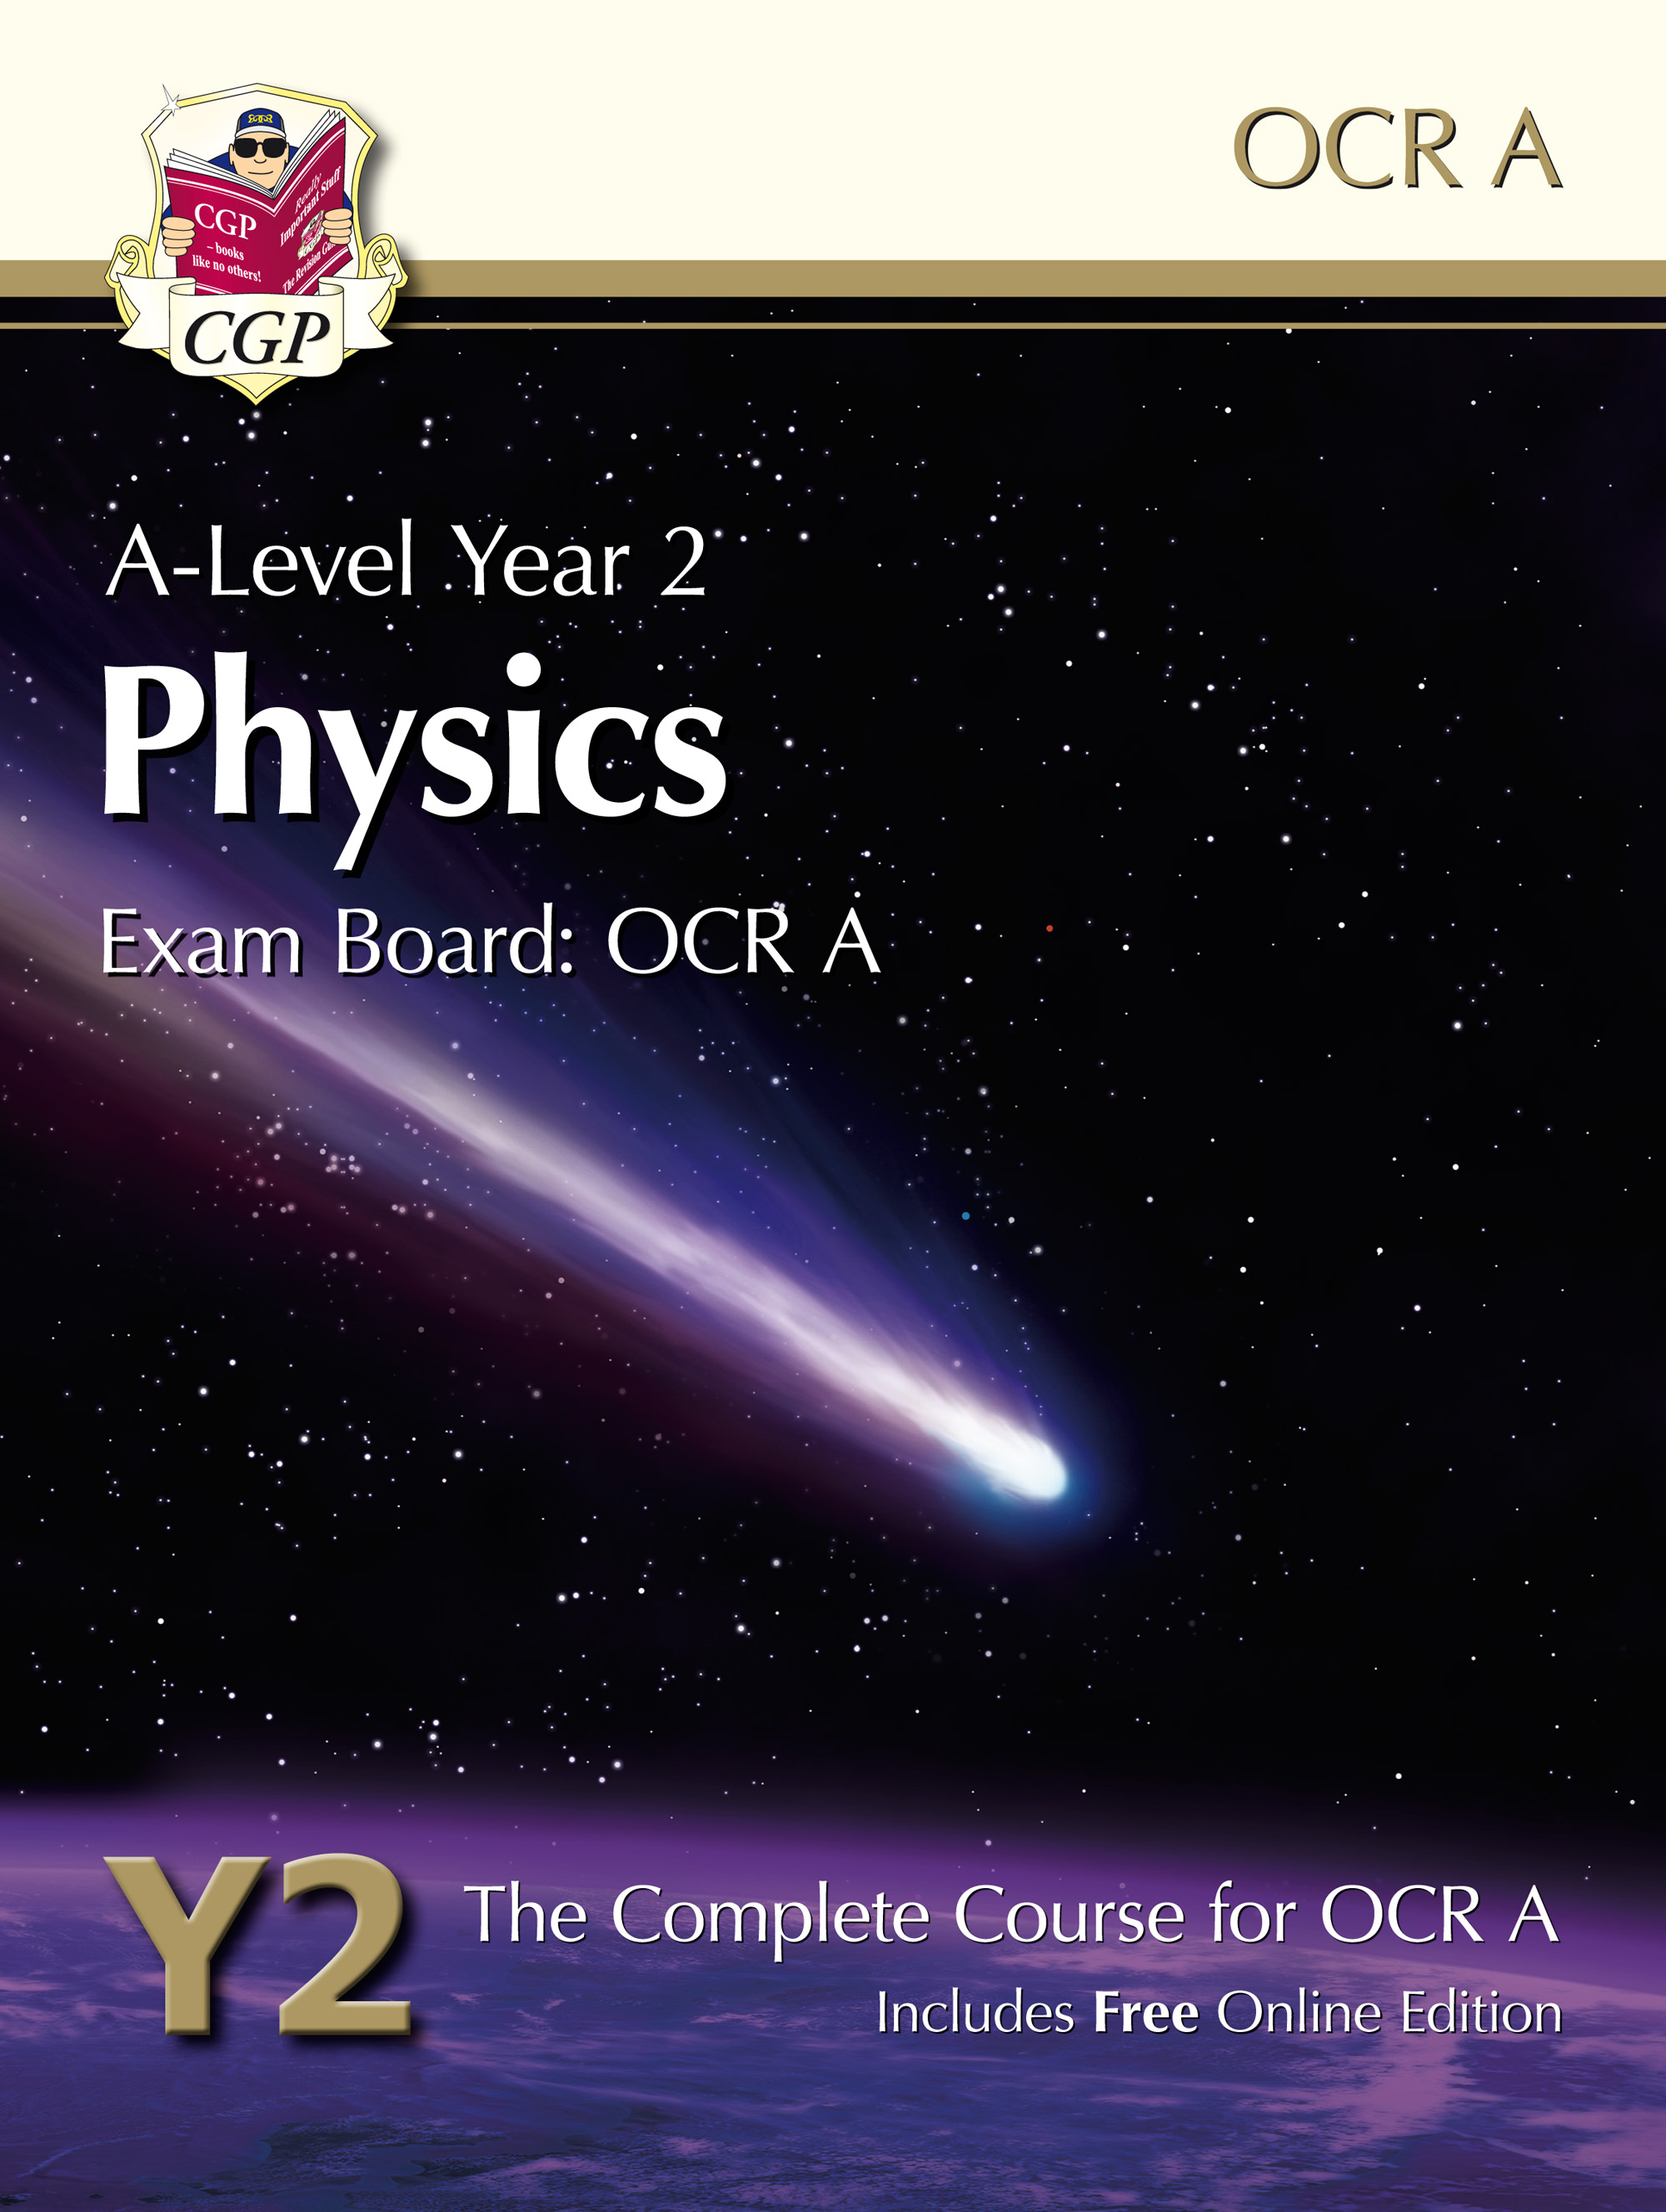 PRATB61 - A-Level Physics for OCR A: Year 2 Student Book with Online Edition